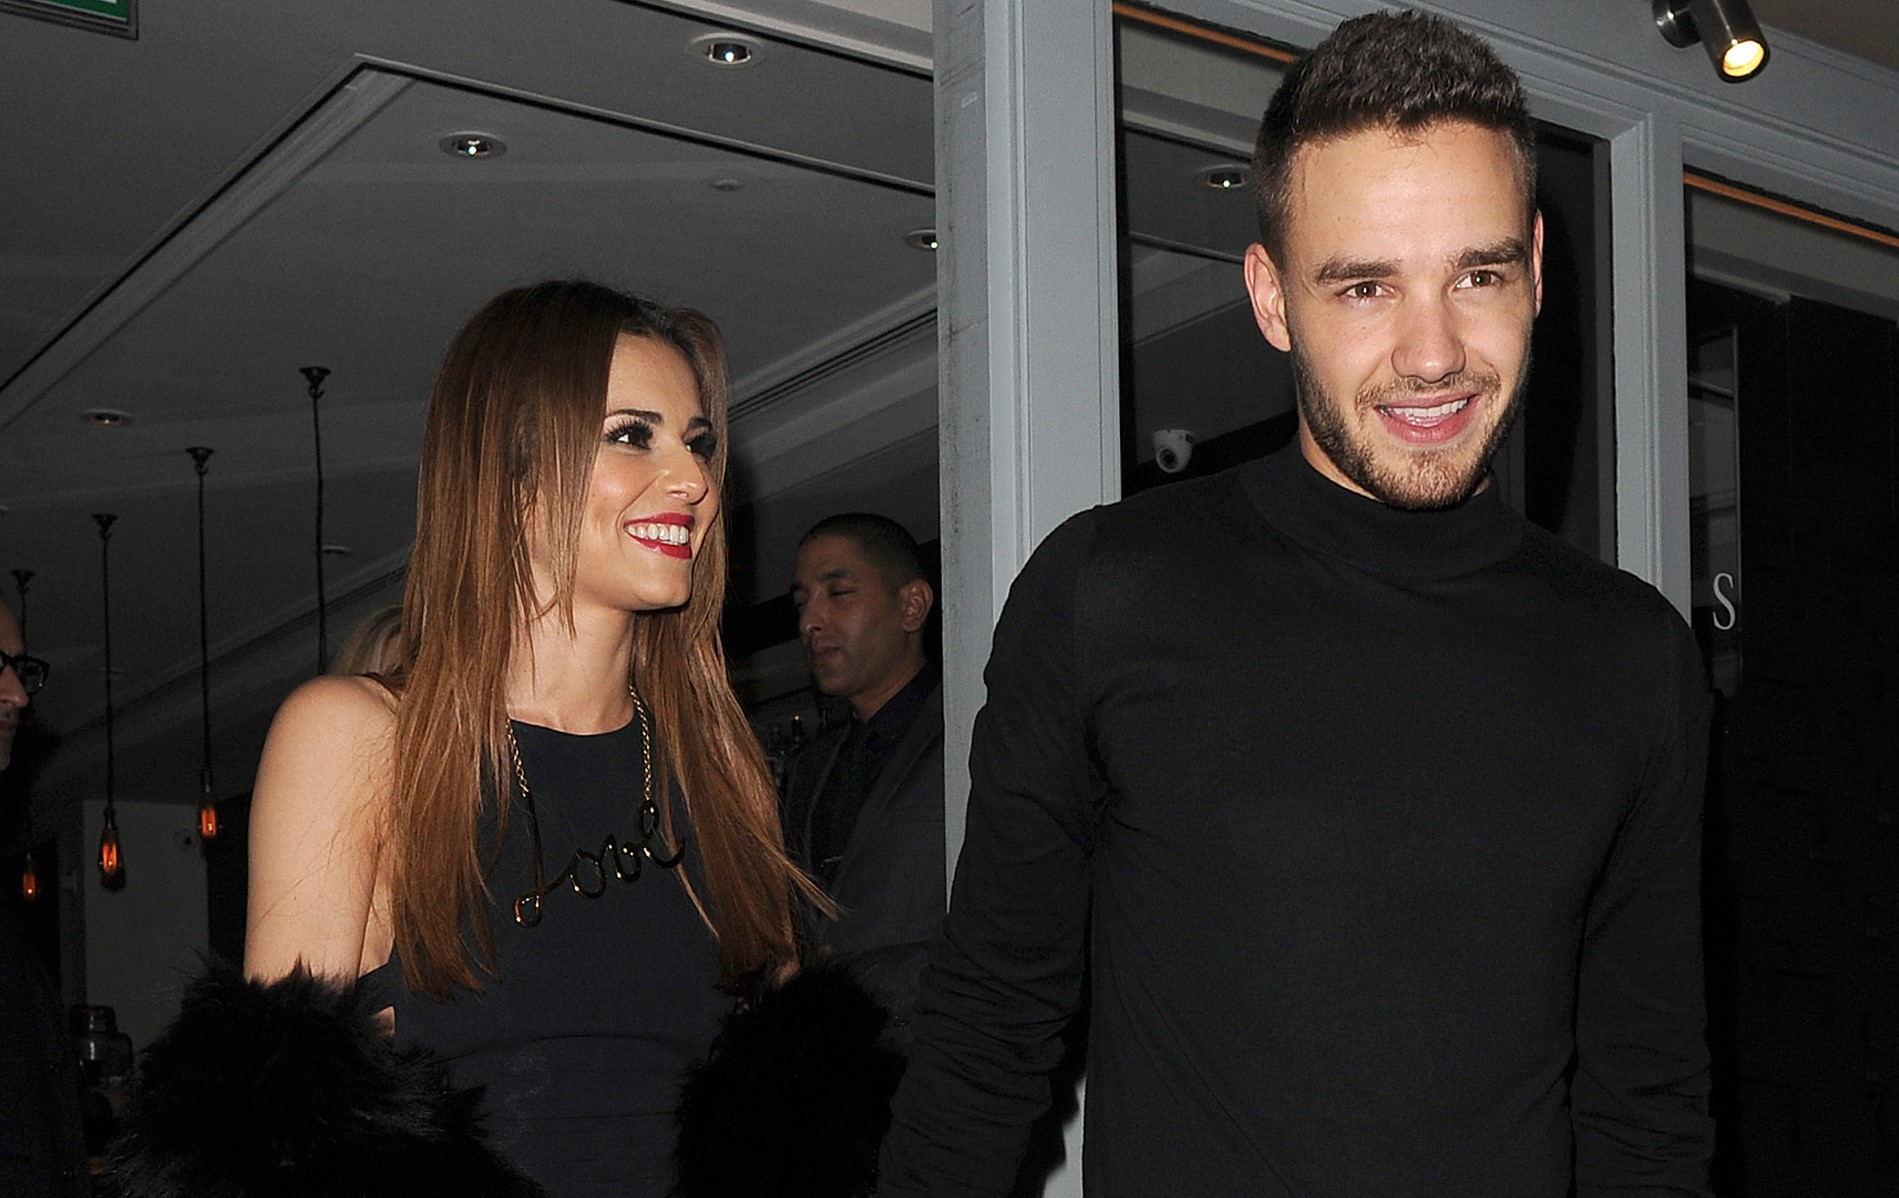 Has Liam Payne just let slip that he and Cheryl are already wed?